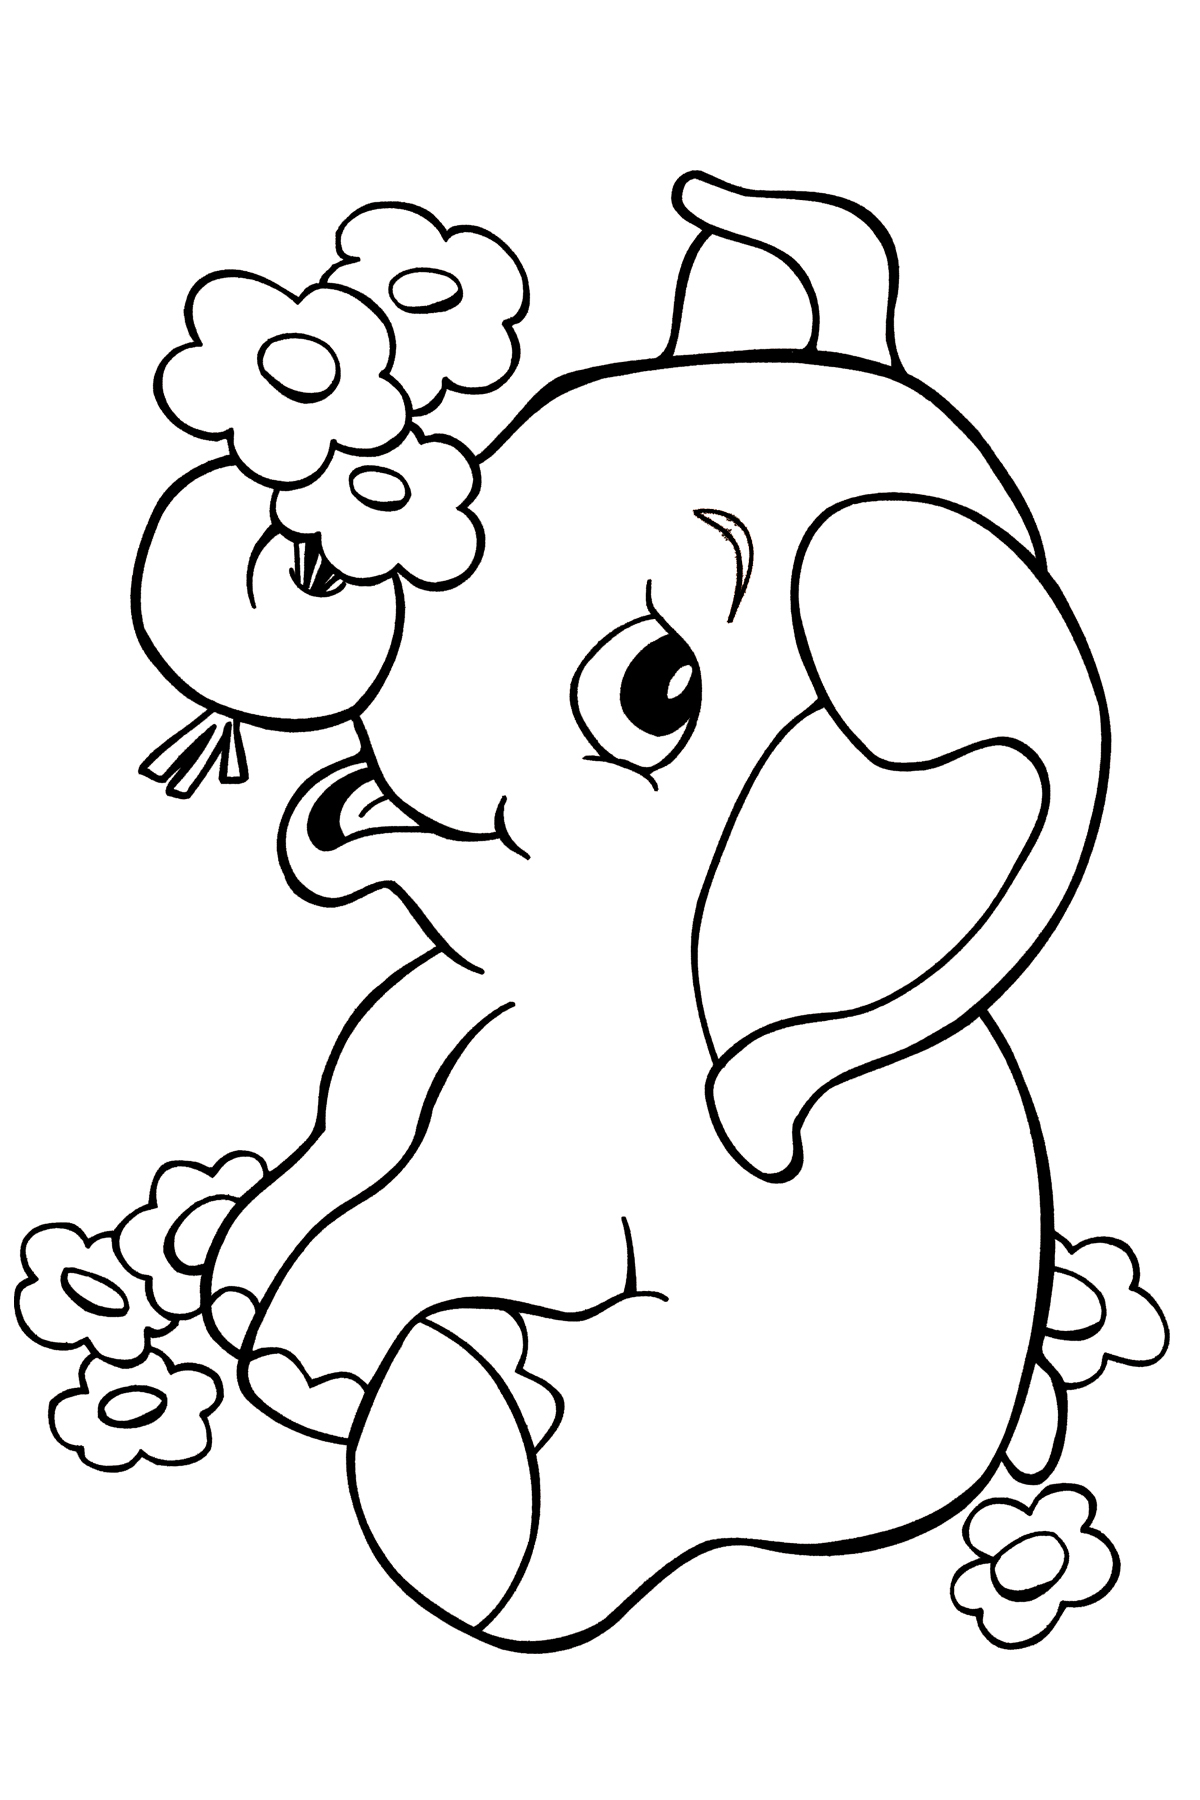 e elephant coloring pages - photo#43